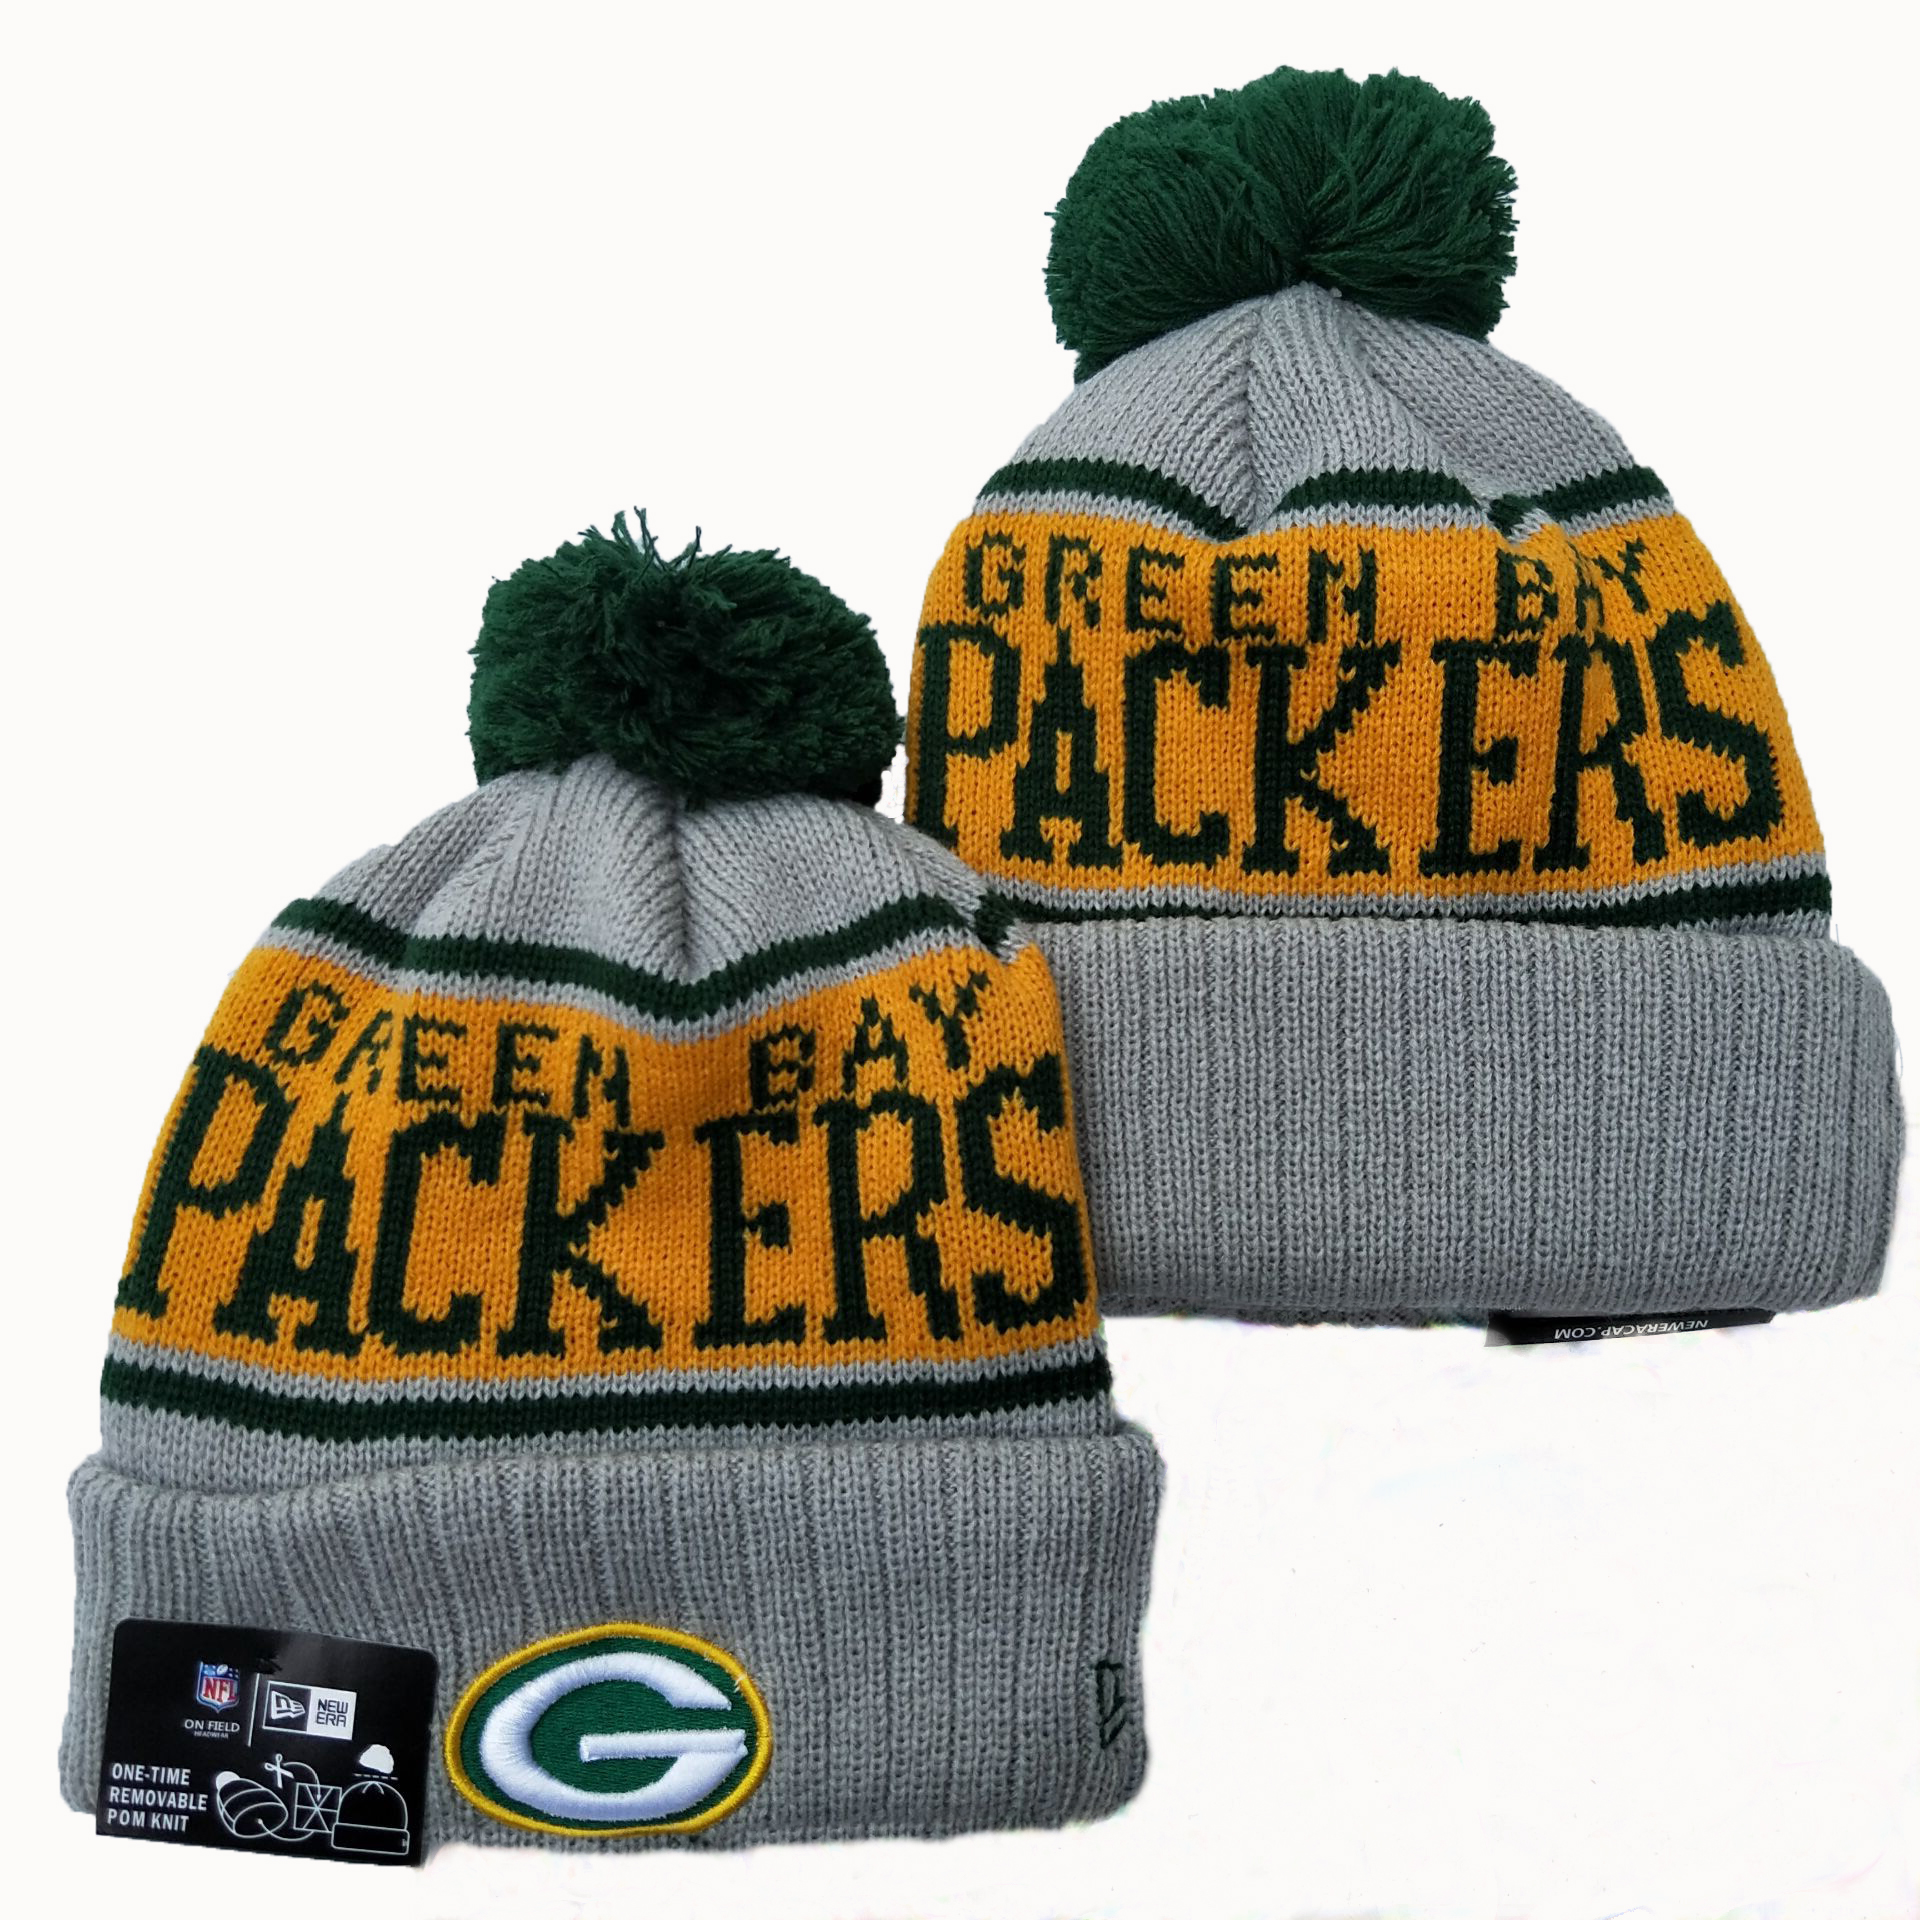 NFL Green Bay Packers New Era 2019 Knit Hats 057